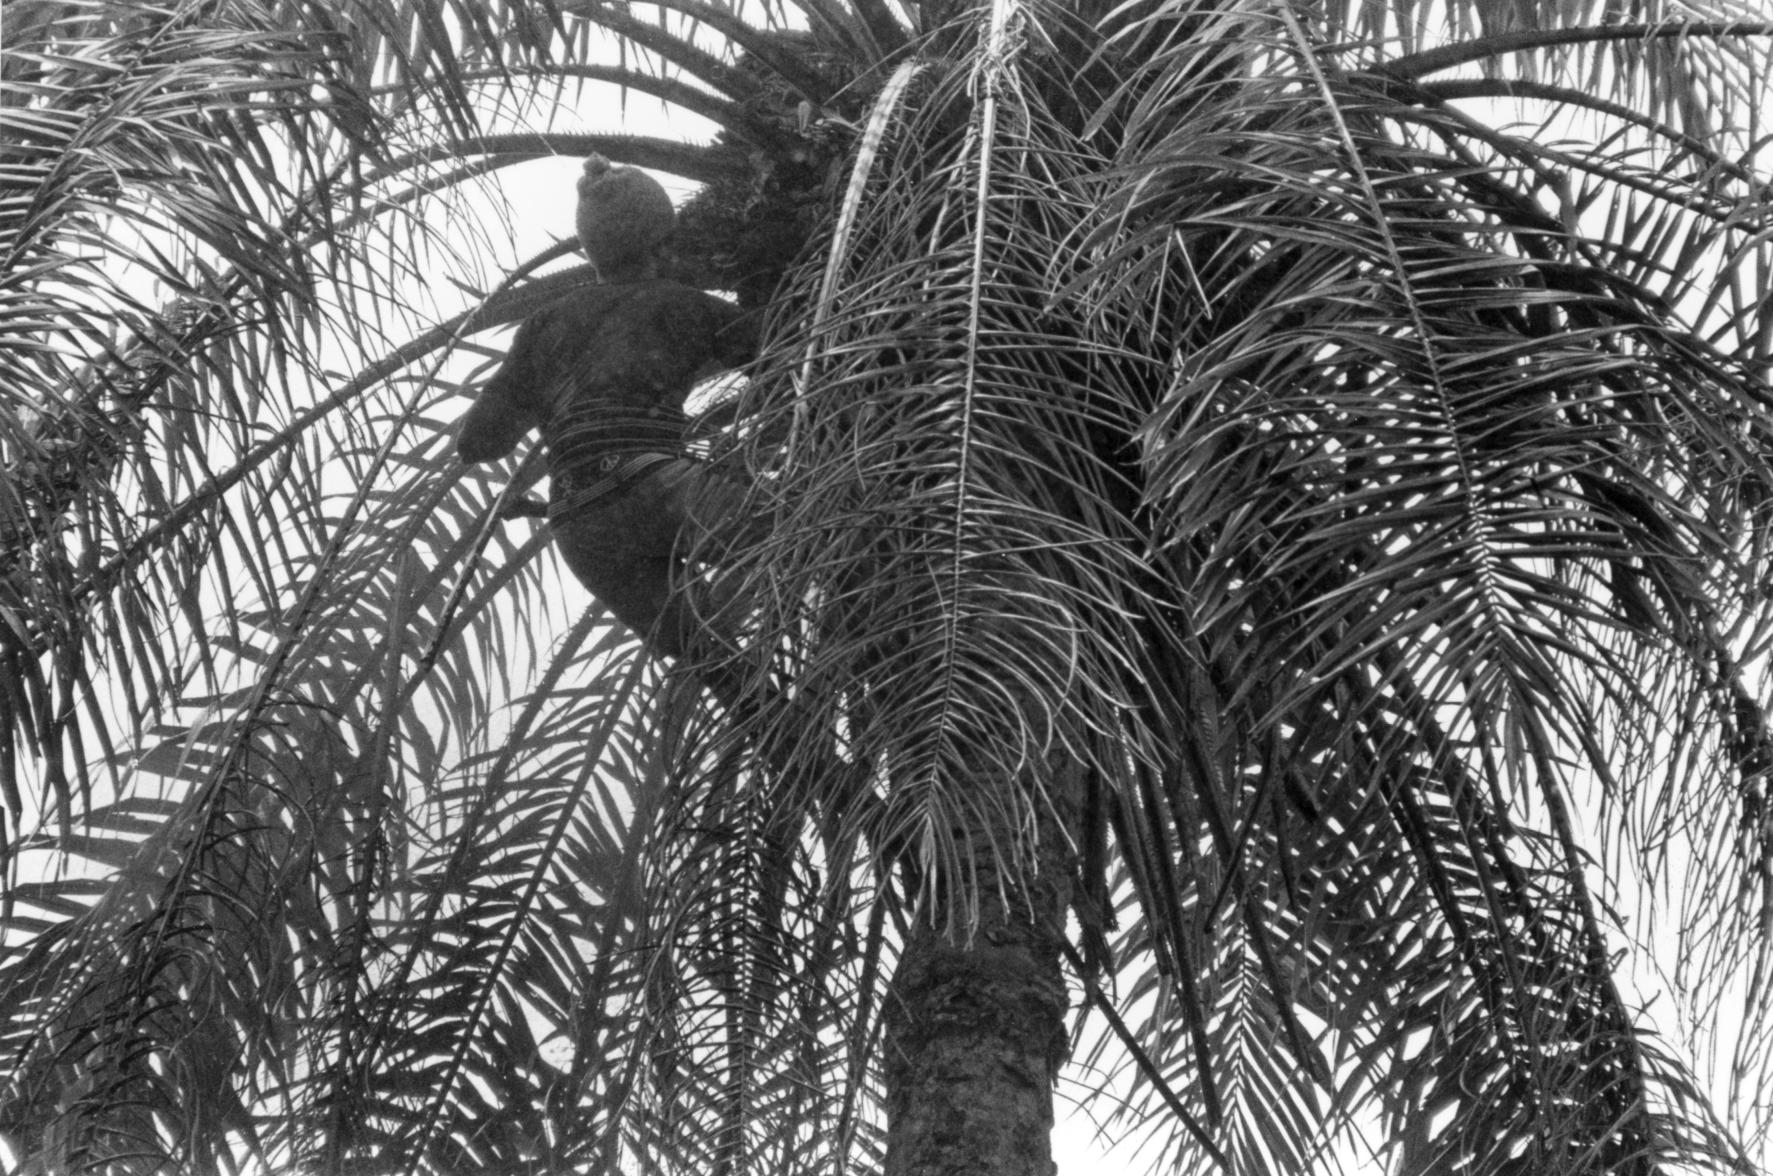 Climber at Top of Tree to Cut Palm Nut Clusters